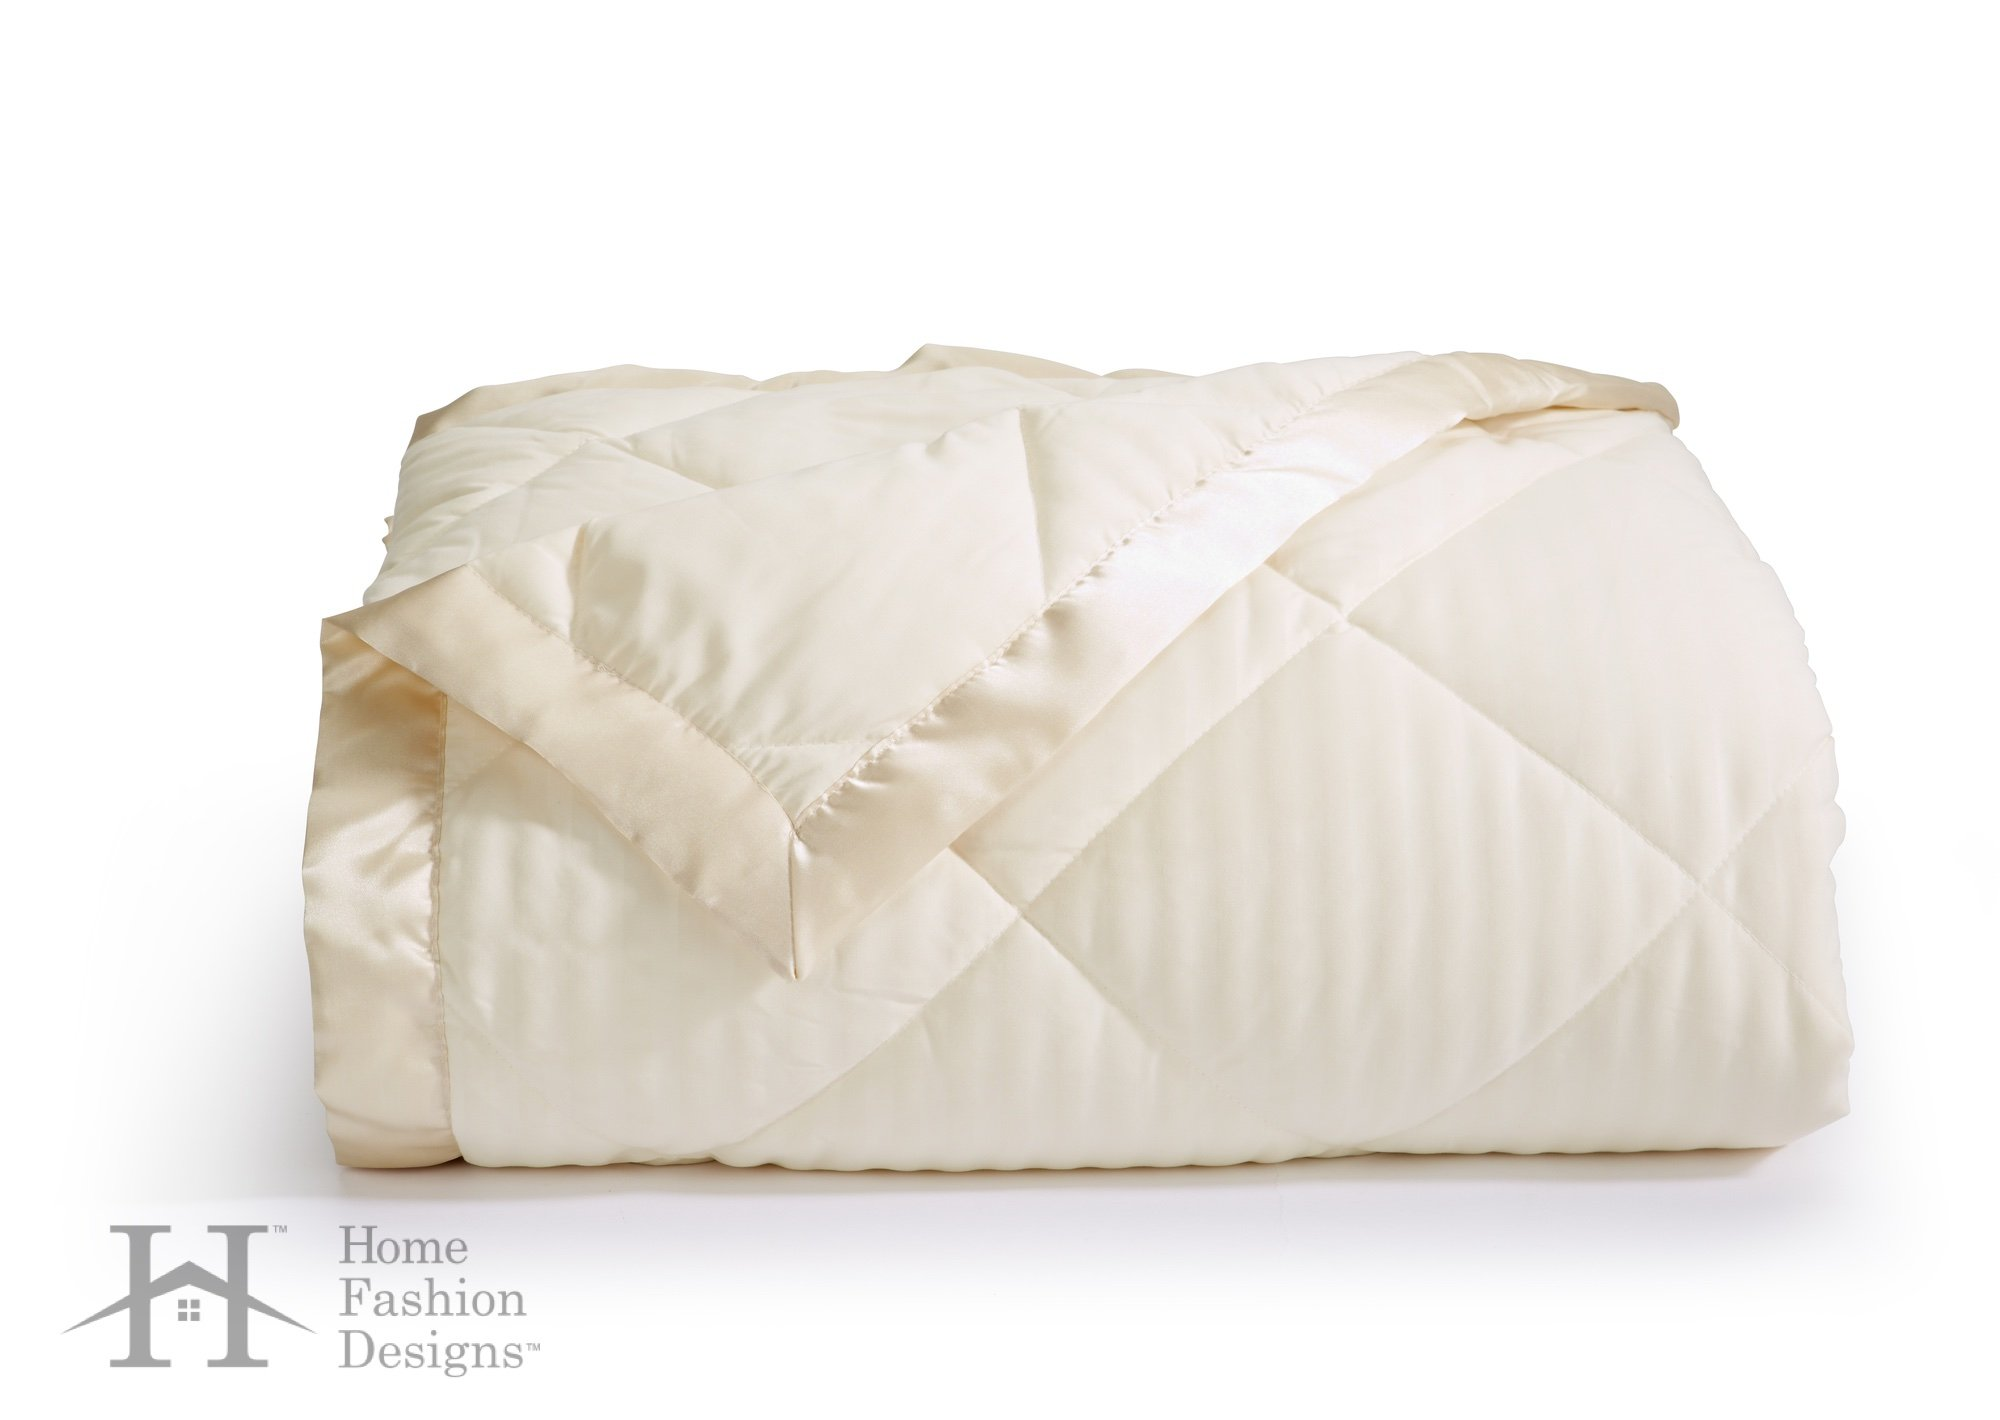 Home Fashion Designs Romana Collection Luxury Goose Down Alternative Quilted Blanket By Brand (Twin, Ivory)